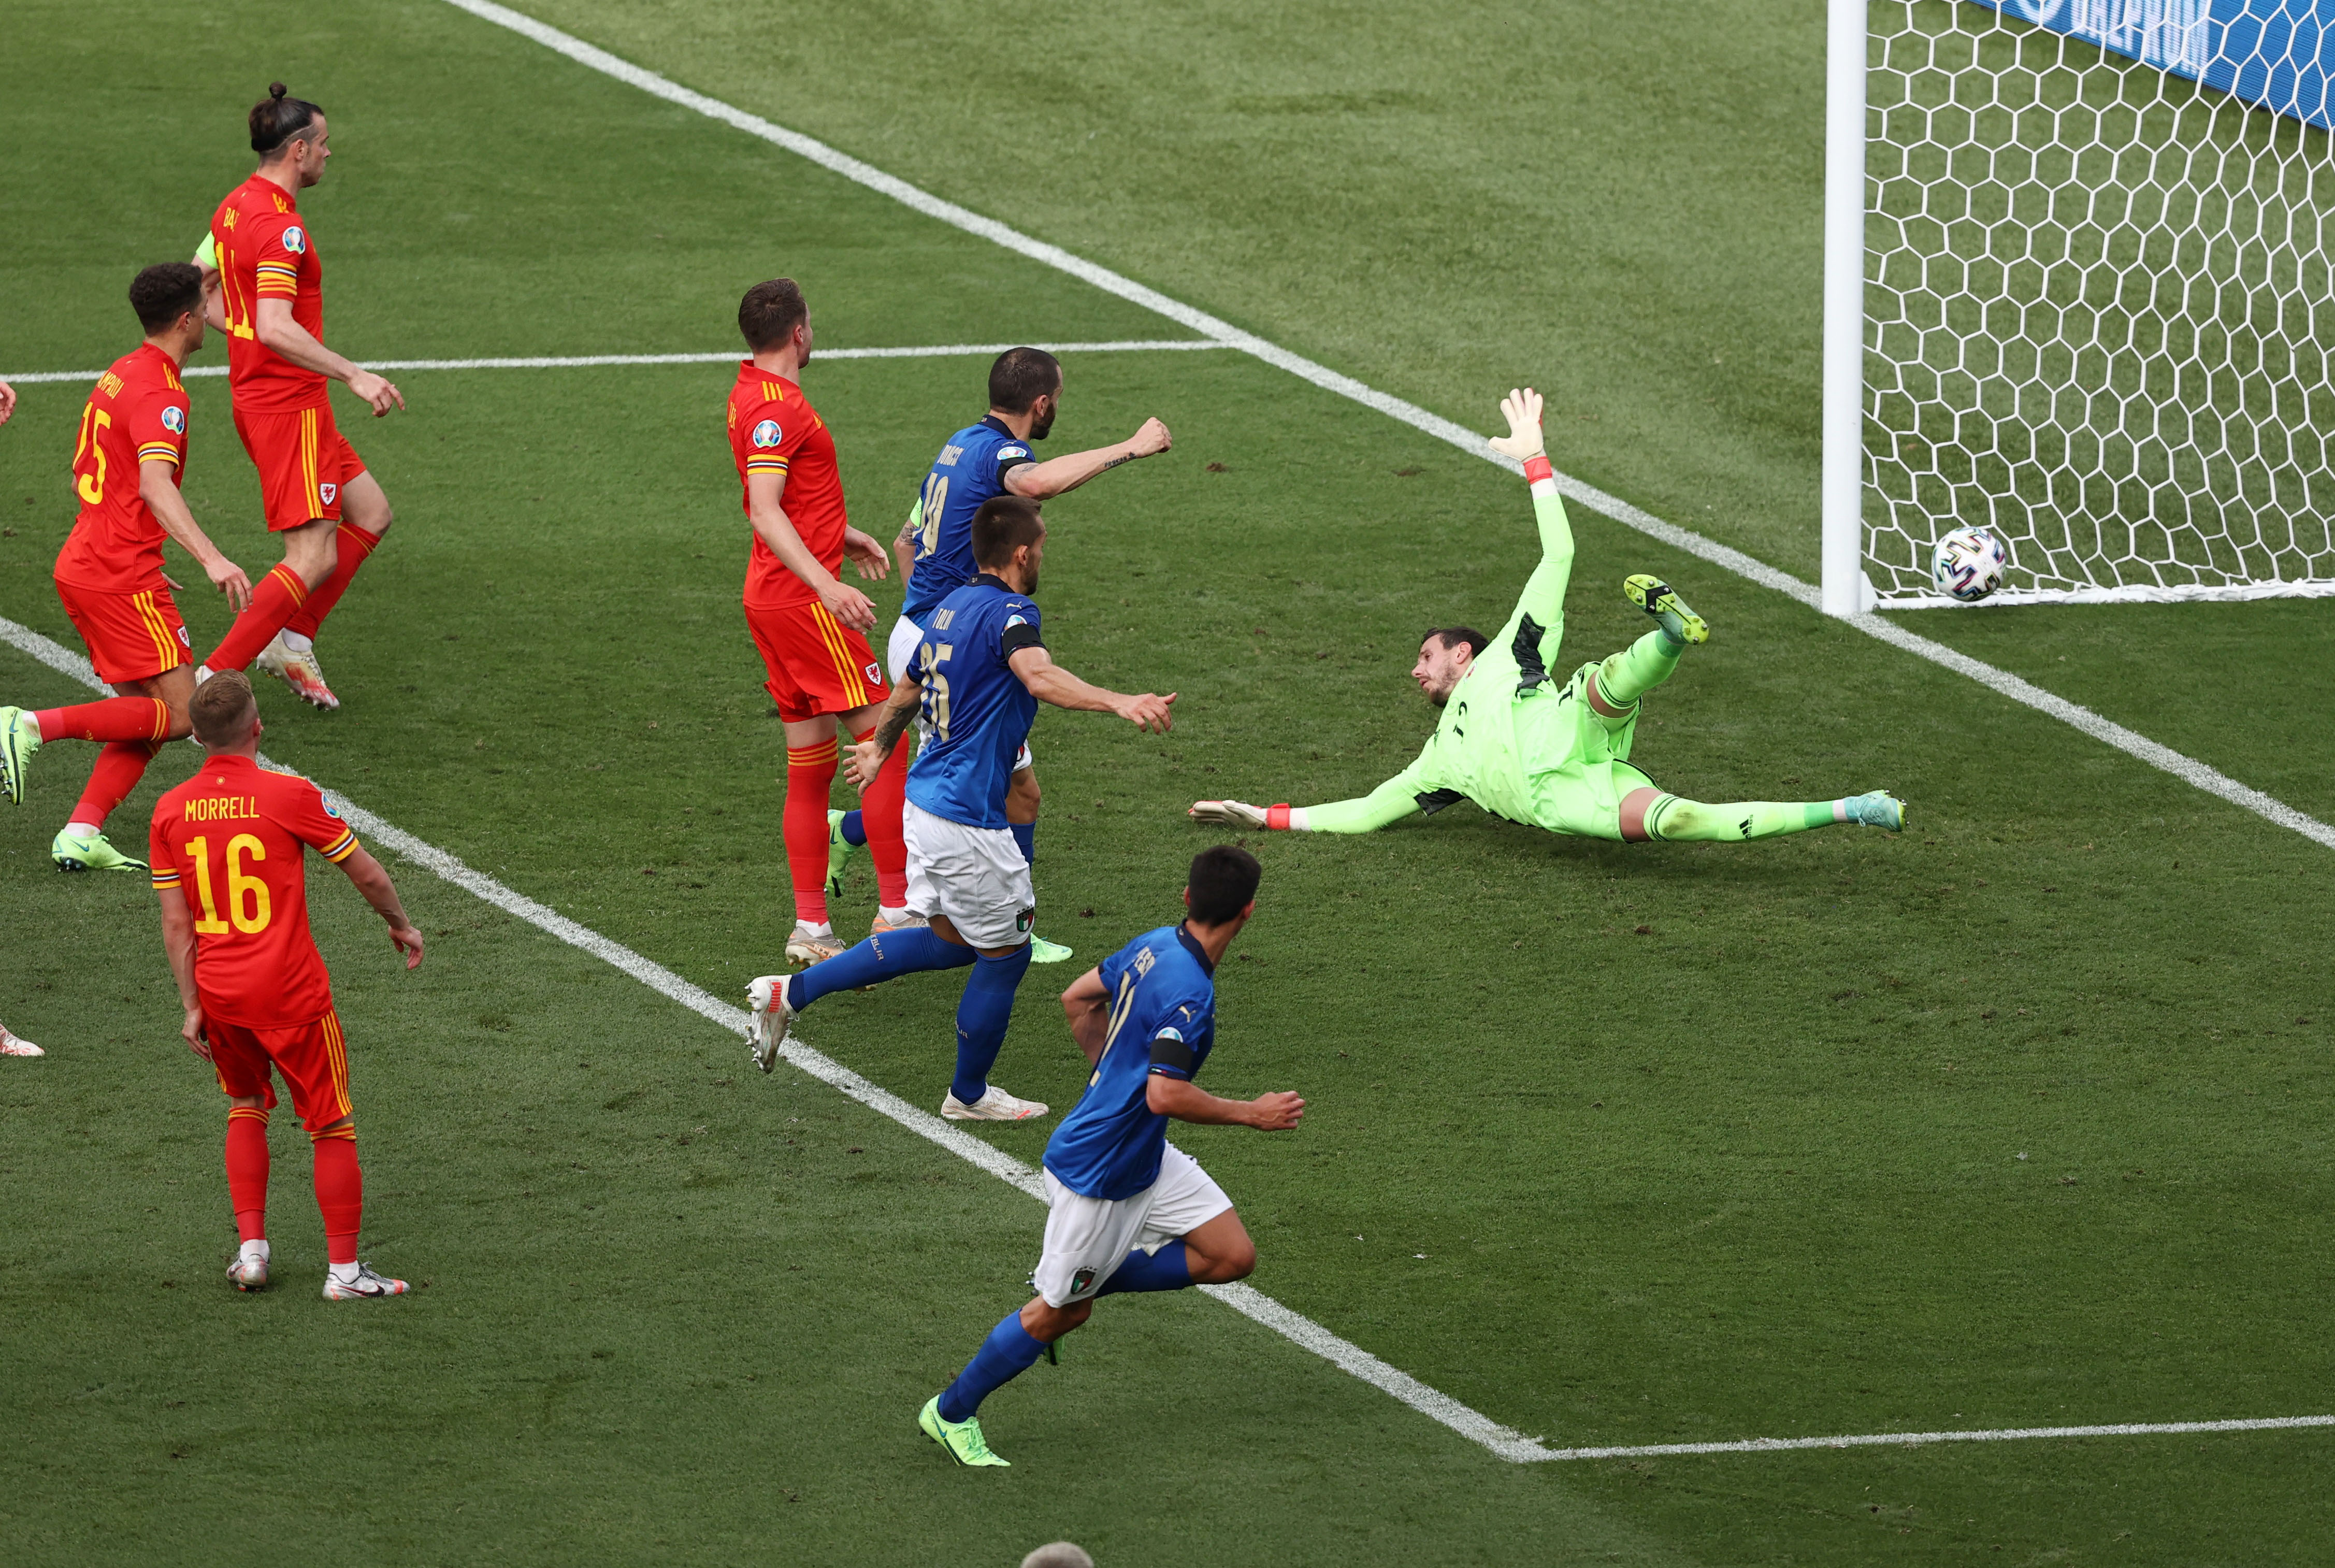 Soccer Football - Euro 2020 - Group A - Italy v Wales - Stadio Olimpico, Rome, Italy - June 20, 2021  Italy's Matteo Pessina scores their first goal Pool via REUTERS/Ryan Pierse